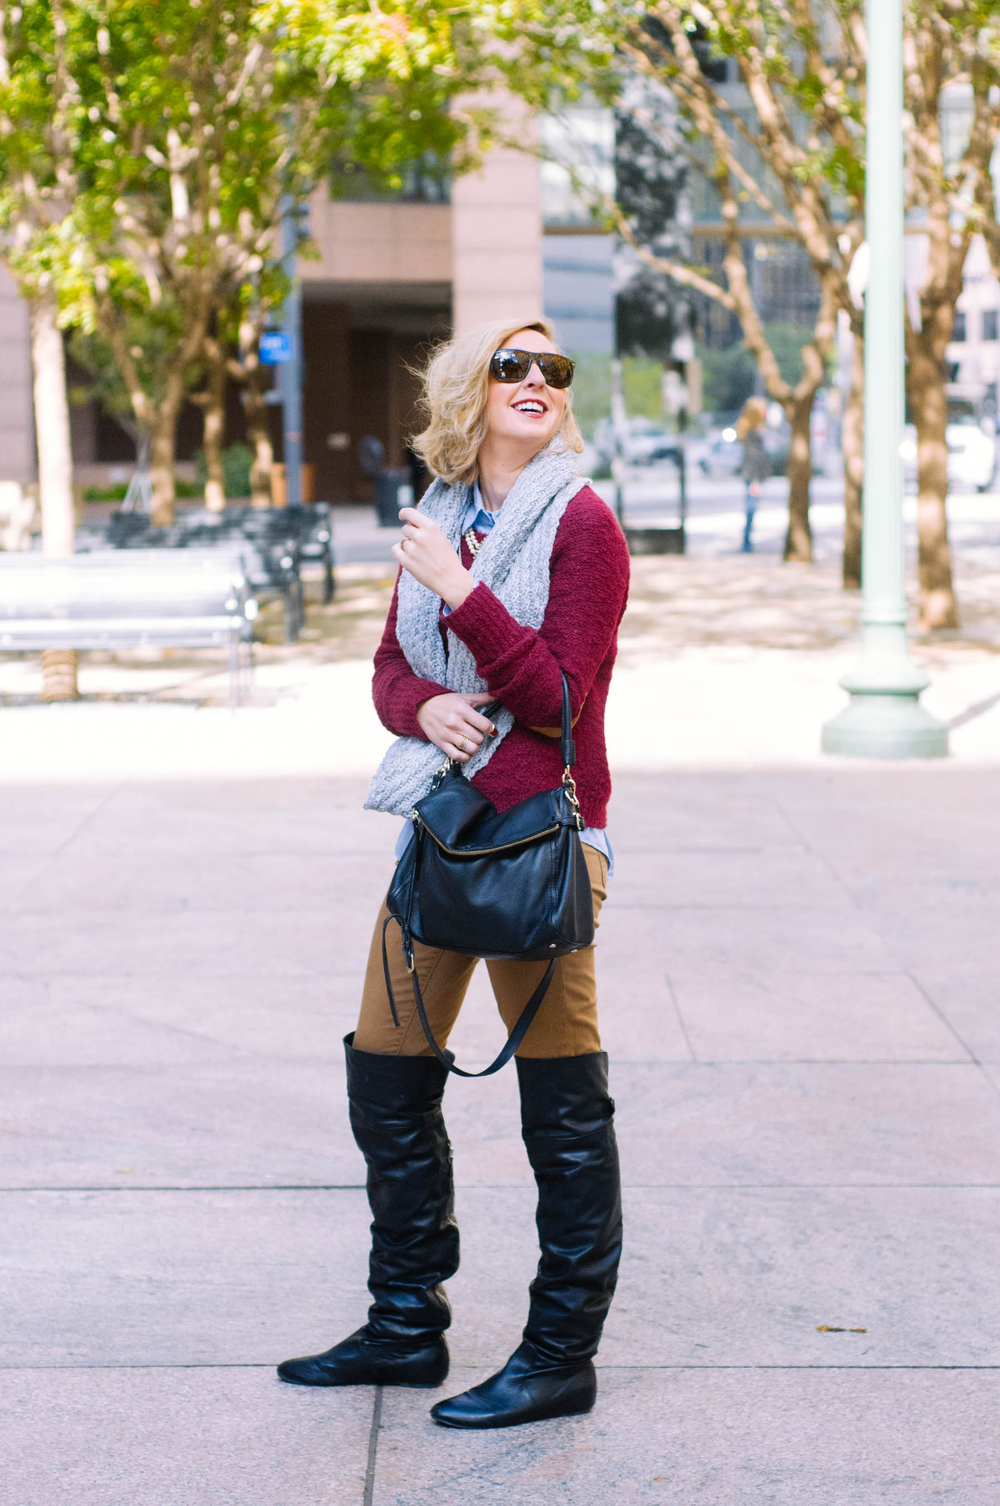 Sweater & Shirt: BDG | Pants: Gap | Boots: Francesco Milano | Scarf: Gap | Bag: Kate Spade |  Watch: Michele | Jewelry: J.Crew, Stella & Dot, Madewell, Forever 21 | Sunglasses: RayBan